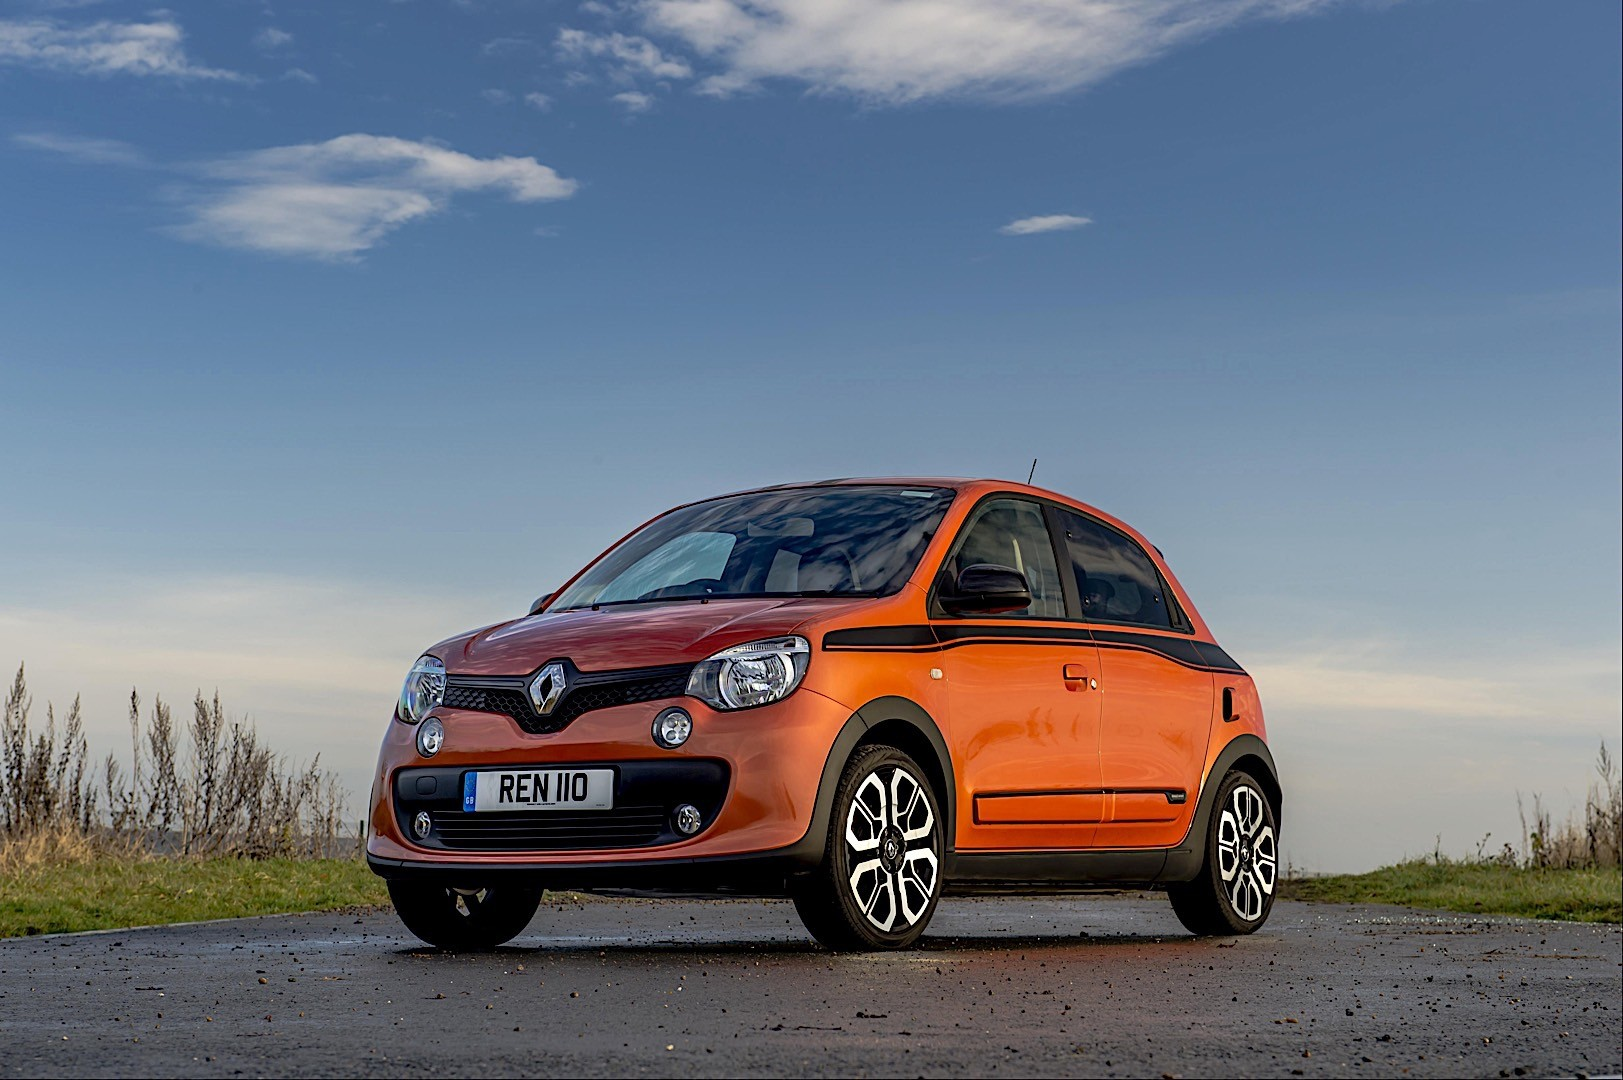 renault twingo gt specs photos 2016 2017 2018 2019 autoevolution. Black Bedroom Furniture Sets. Home Design Ideas